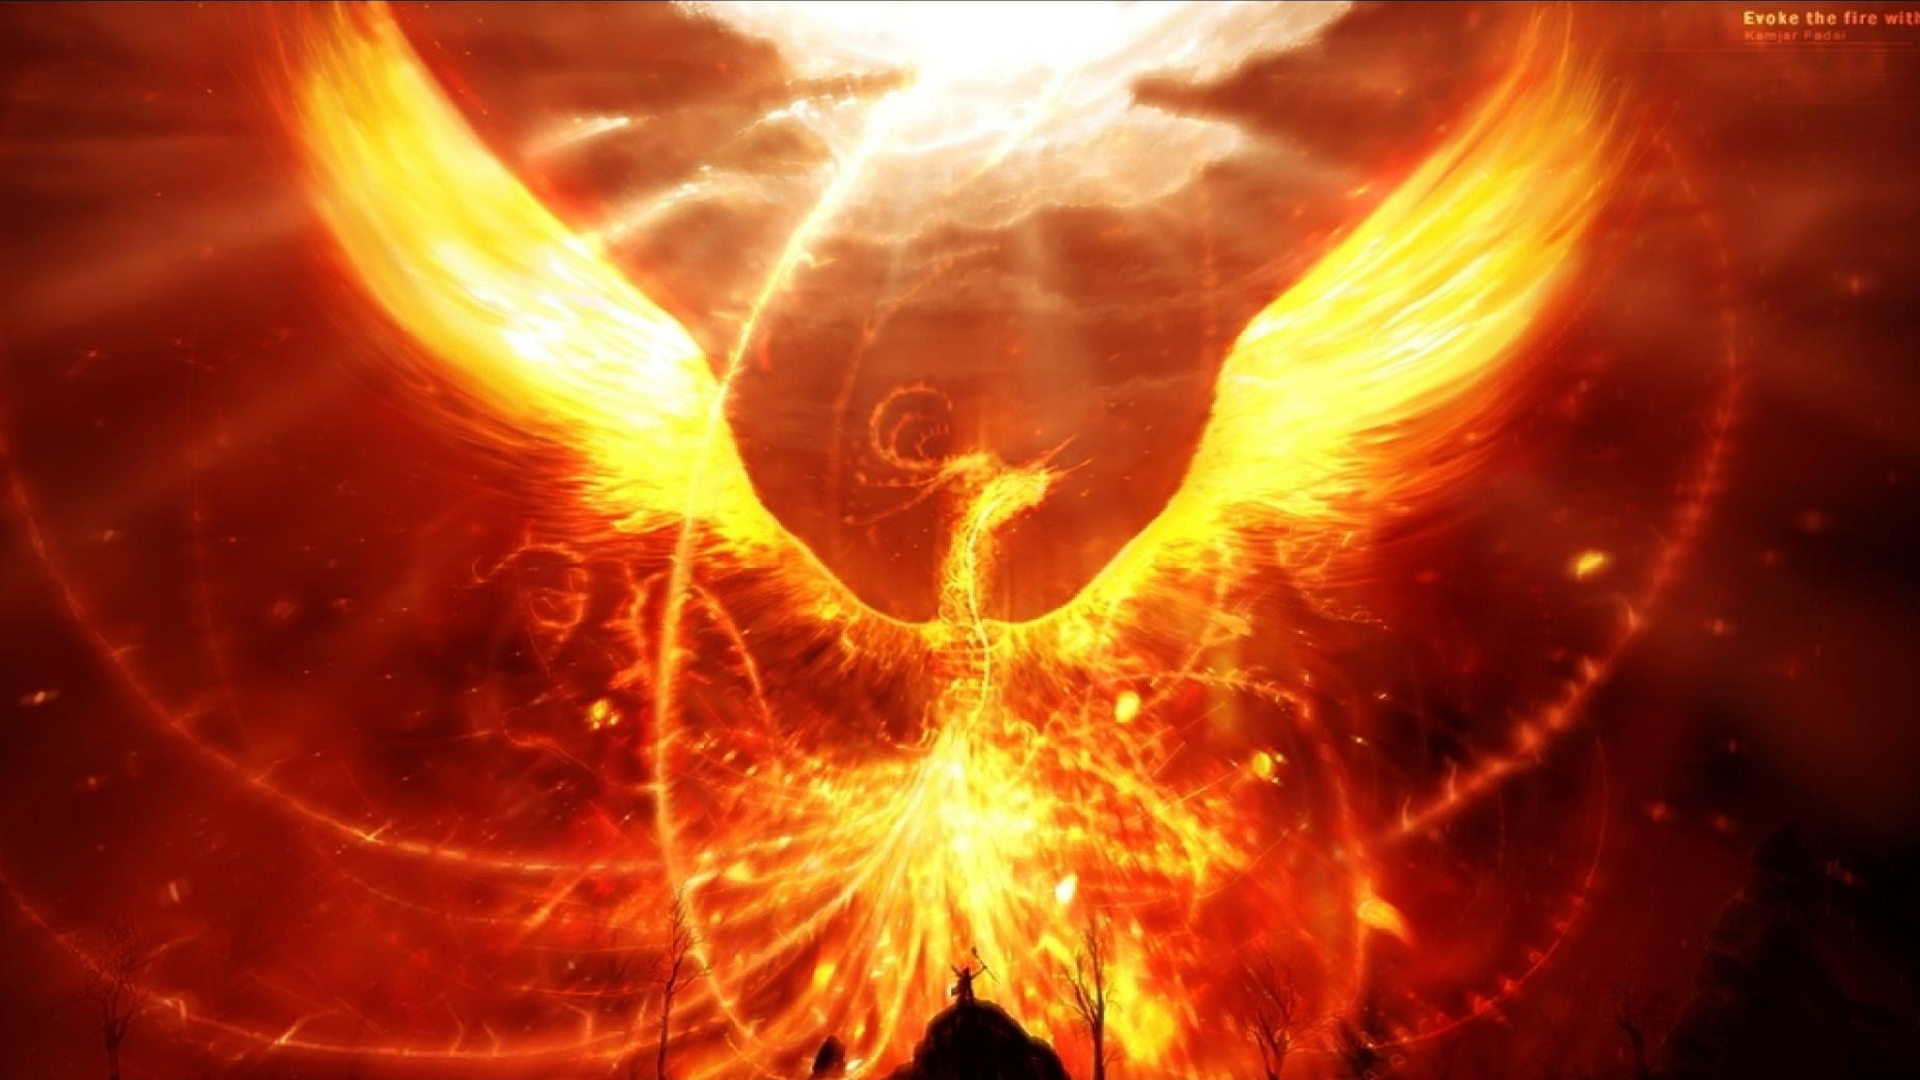 Phoenix Wallpapers Hintergrnde 1920x1080 ID17704 1920x1080